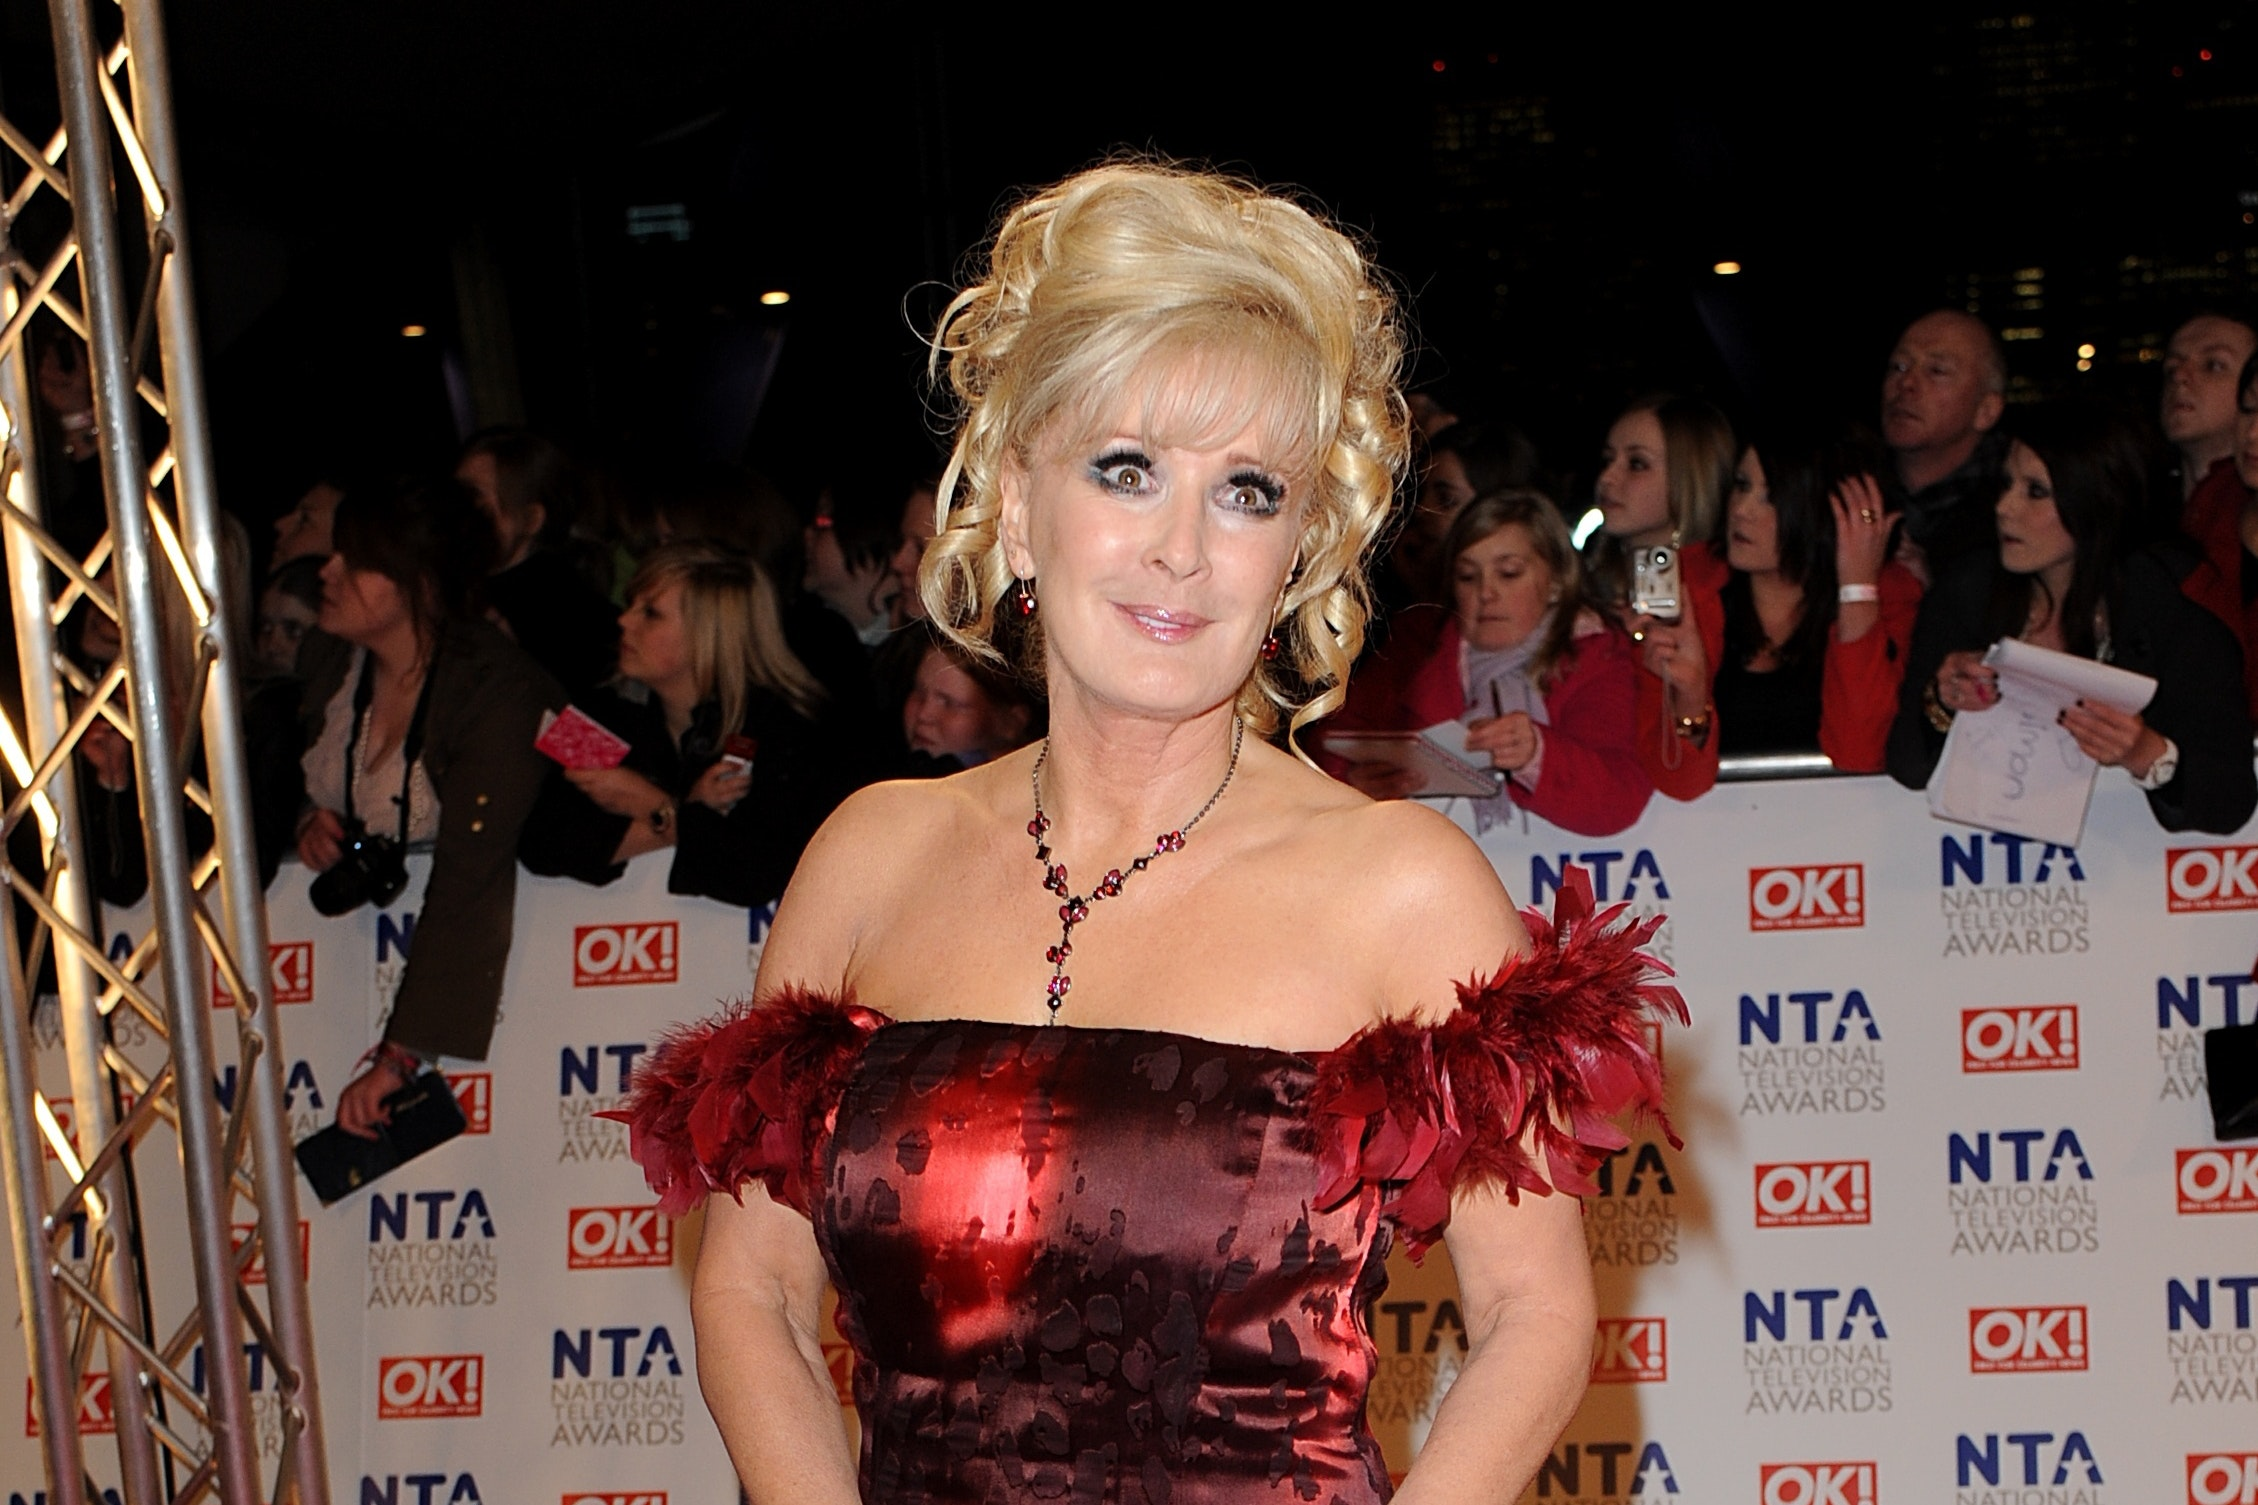 Beverley Callard, who said she believed her character would never have a relationship with a married man